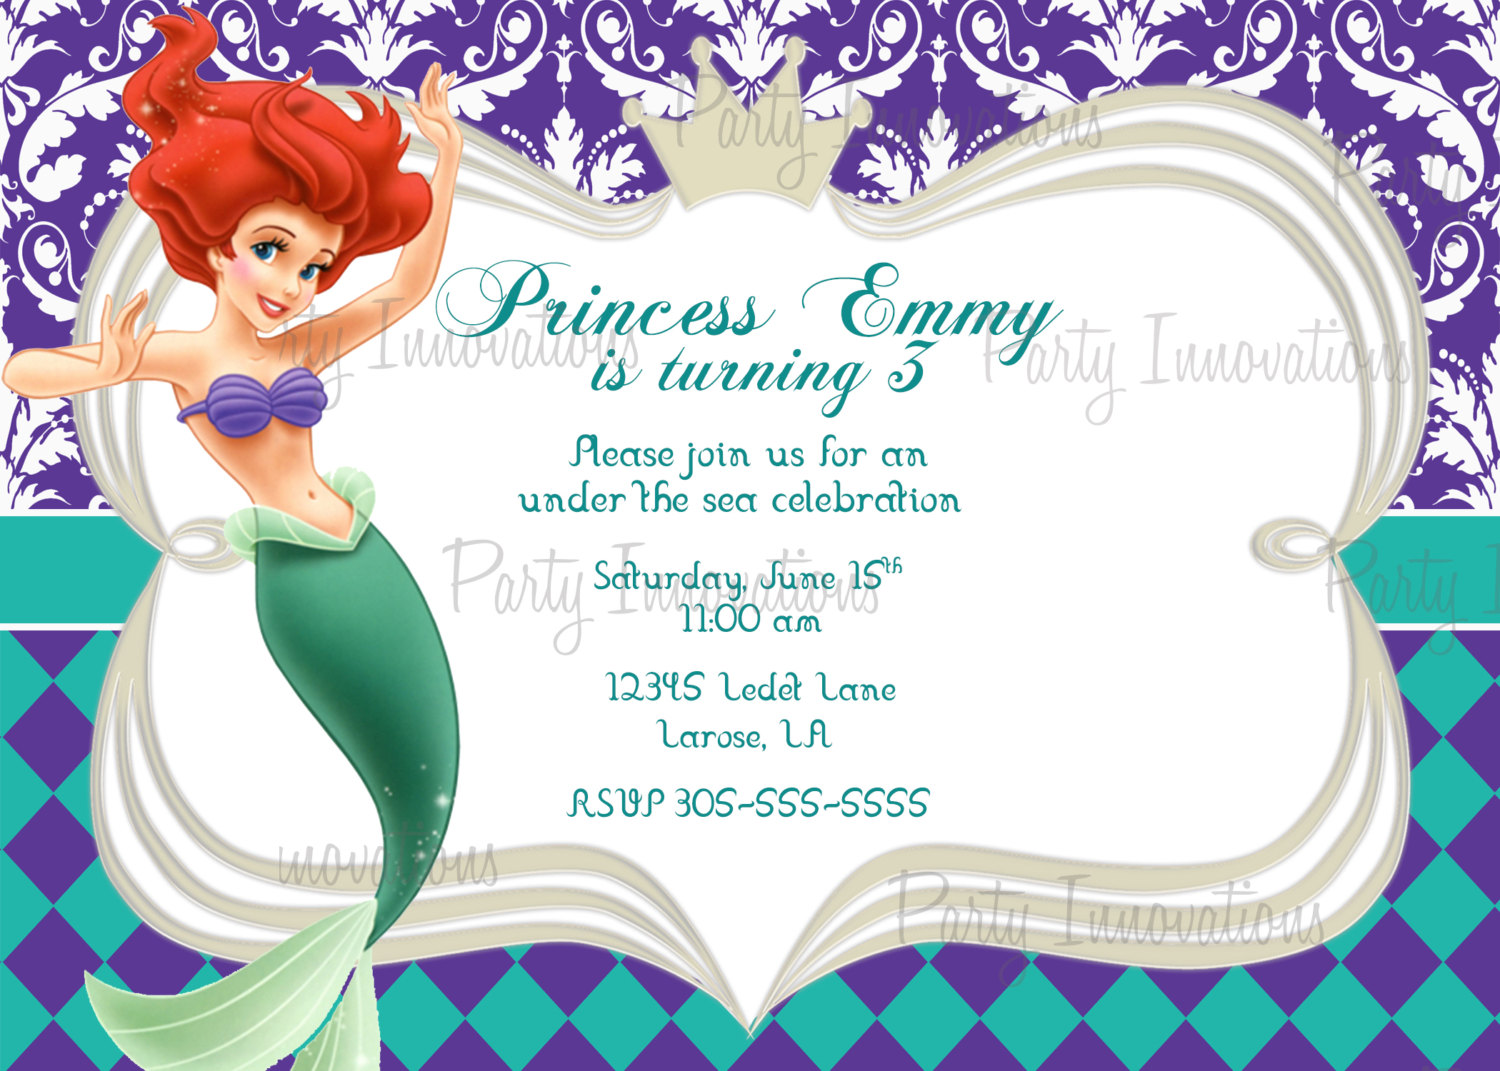 little mermaid photo birthday invitations ; little-mermaid-birthday-invitations-for-invitations-your-Birthday-Invitation-Templates-by-implementing-elegant-motif-concept-12